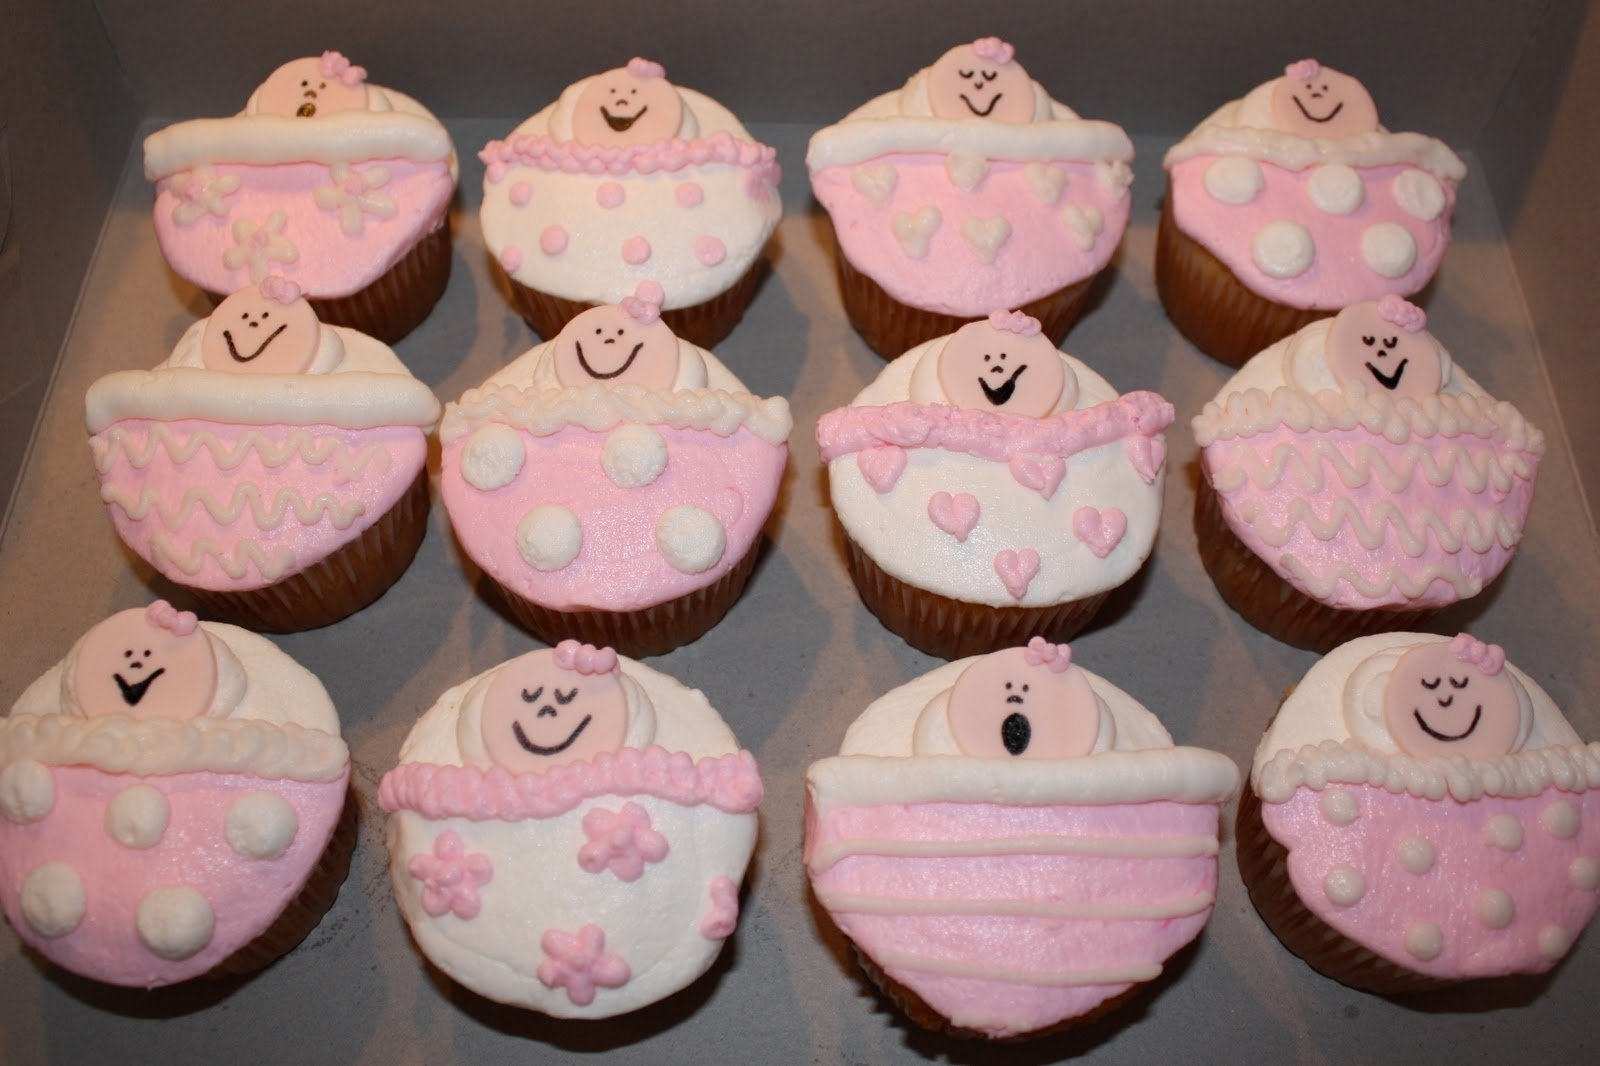 10 Perfect Girl Baby Shower Cupcake Ideas easy baby shower cupcakes for girls baby shower cakes 1 2021